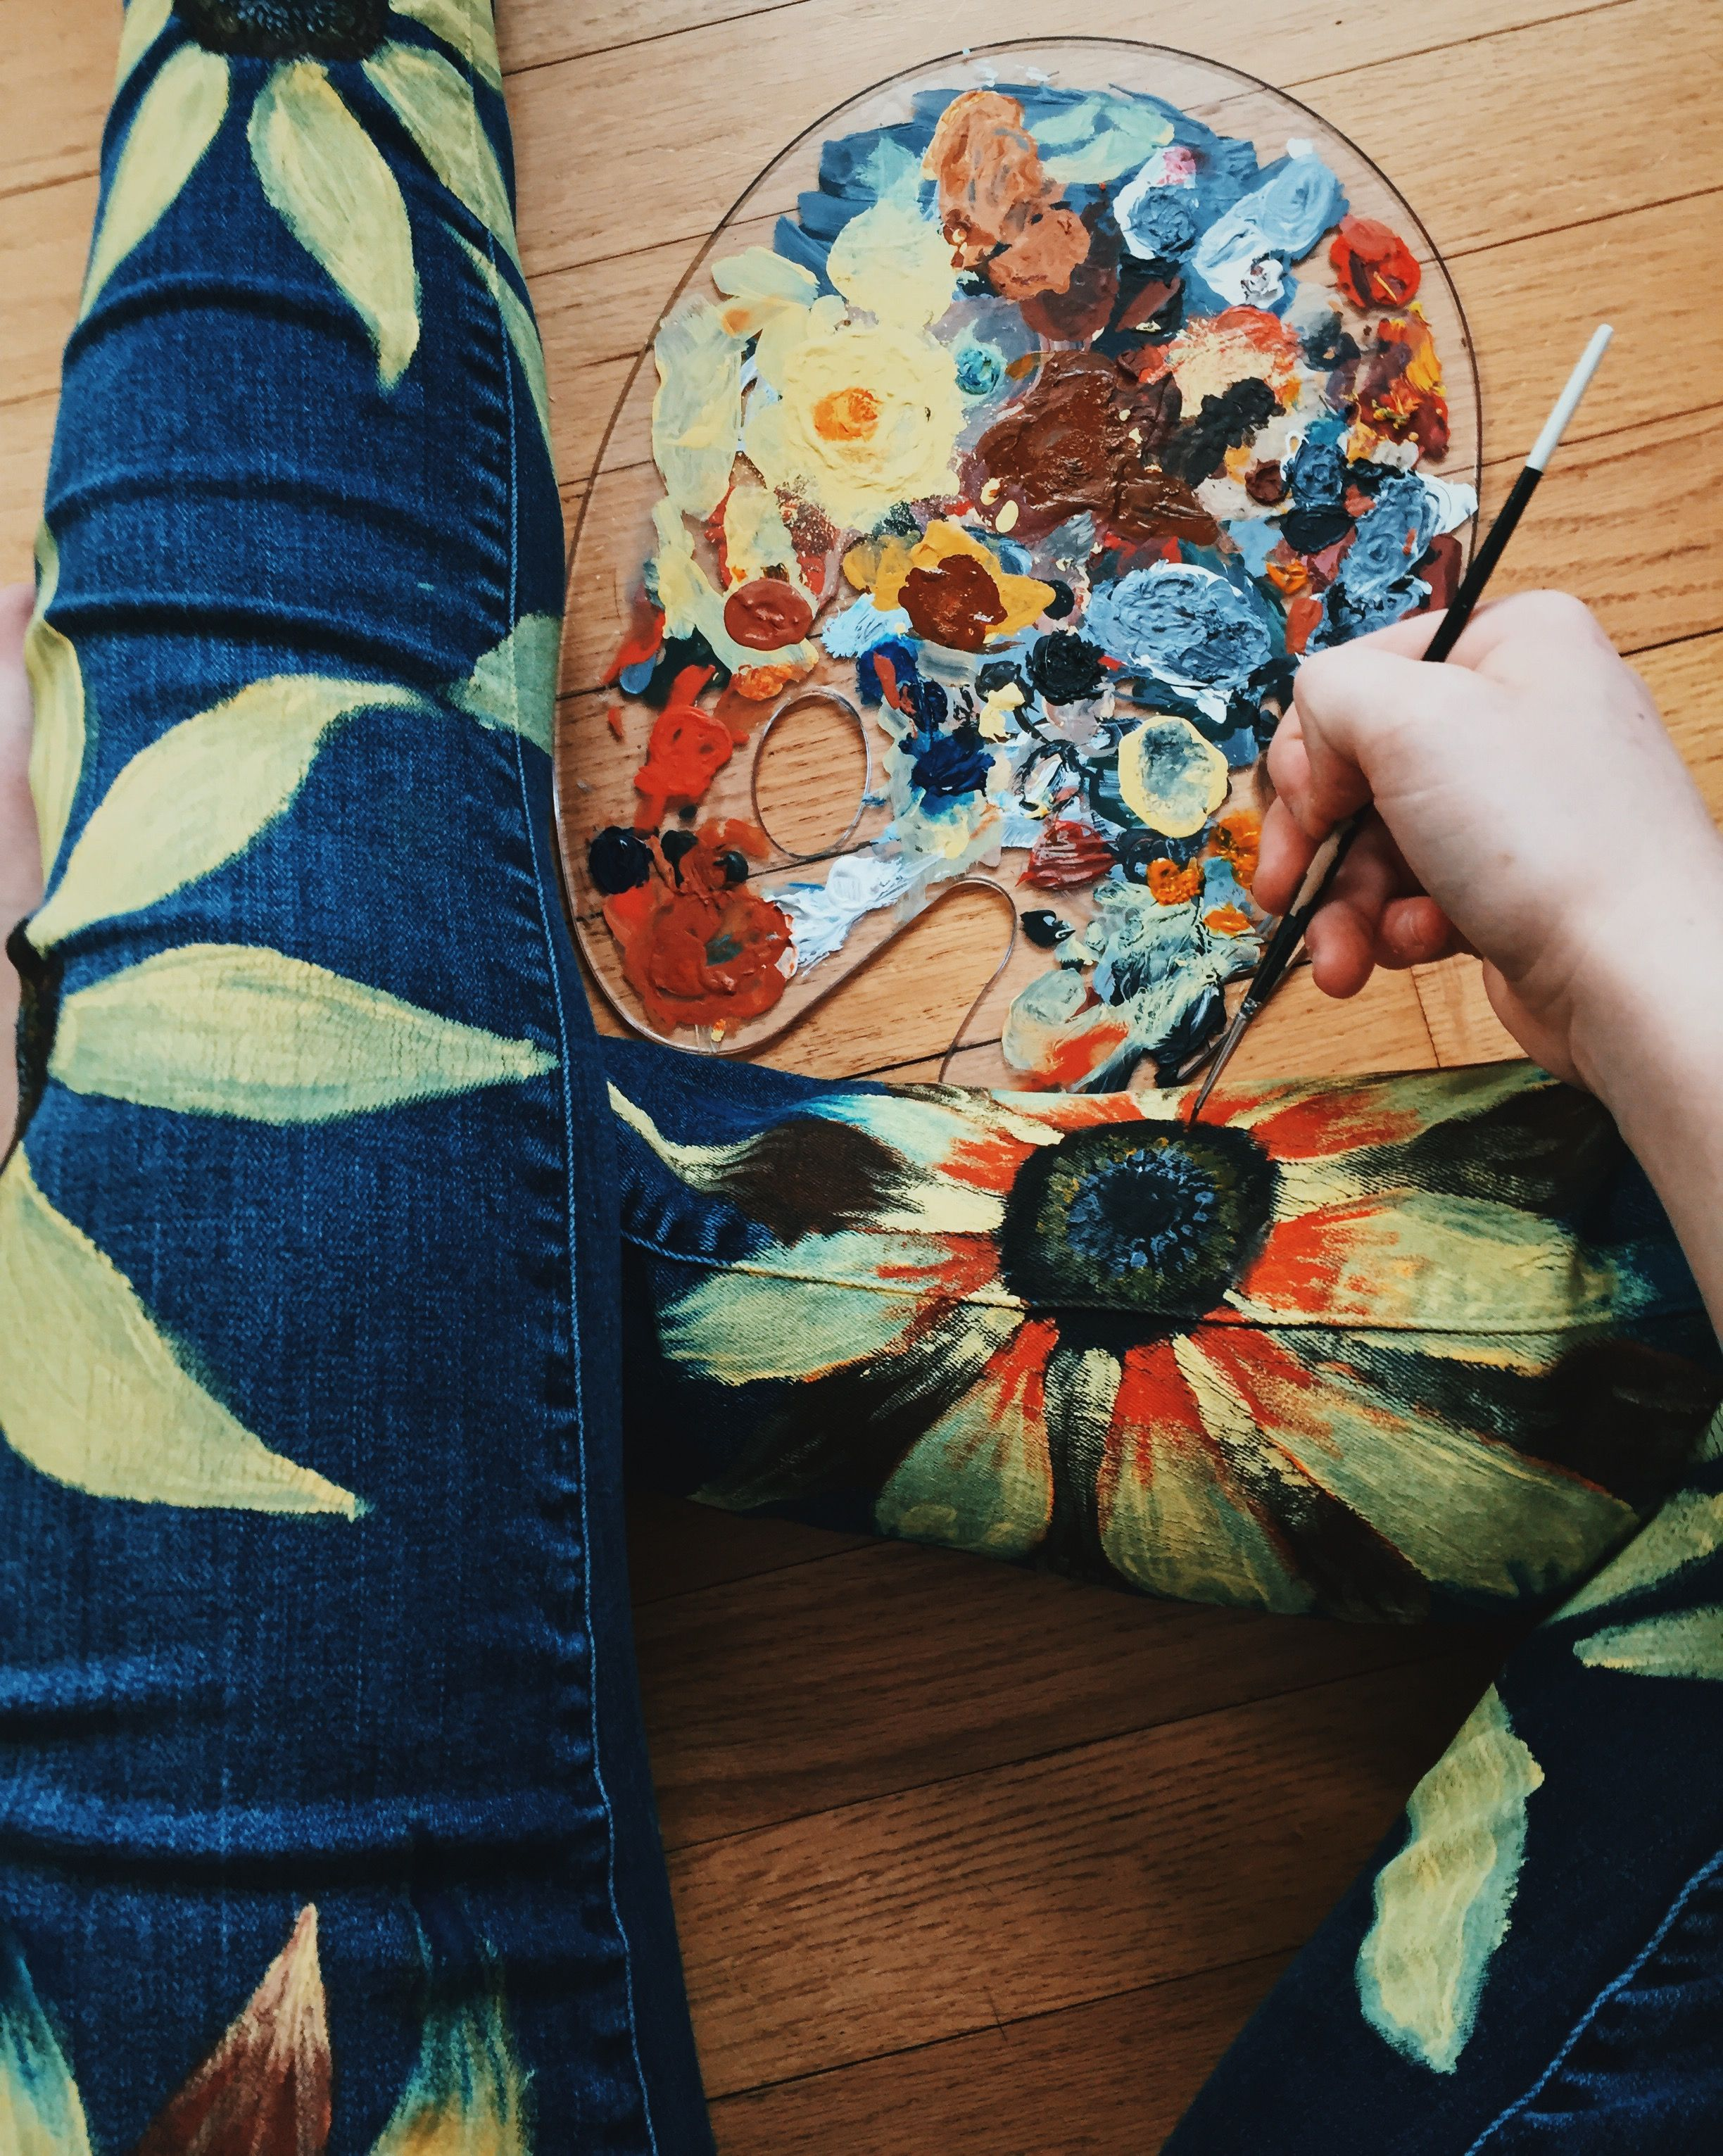 I painted my jeans with acrylic paint to add flowers fashion xx